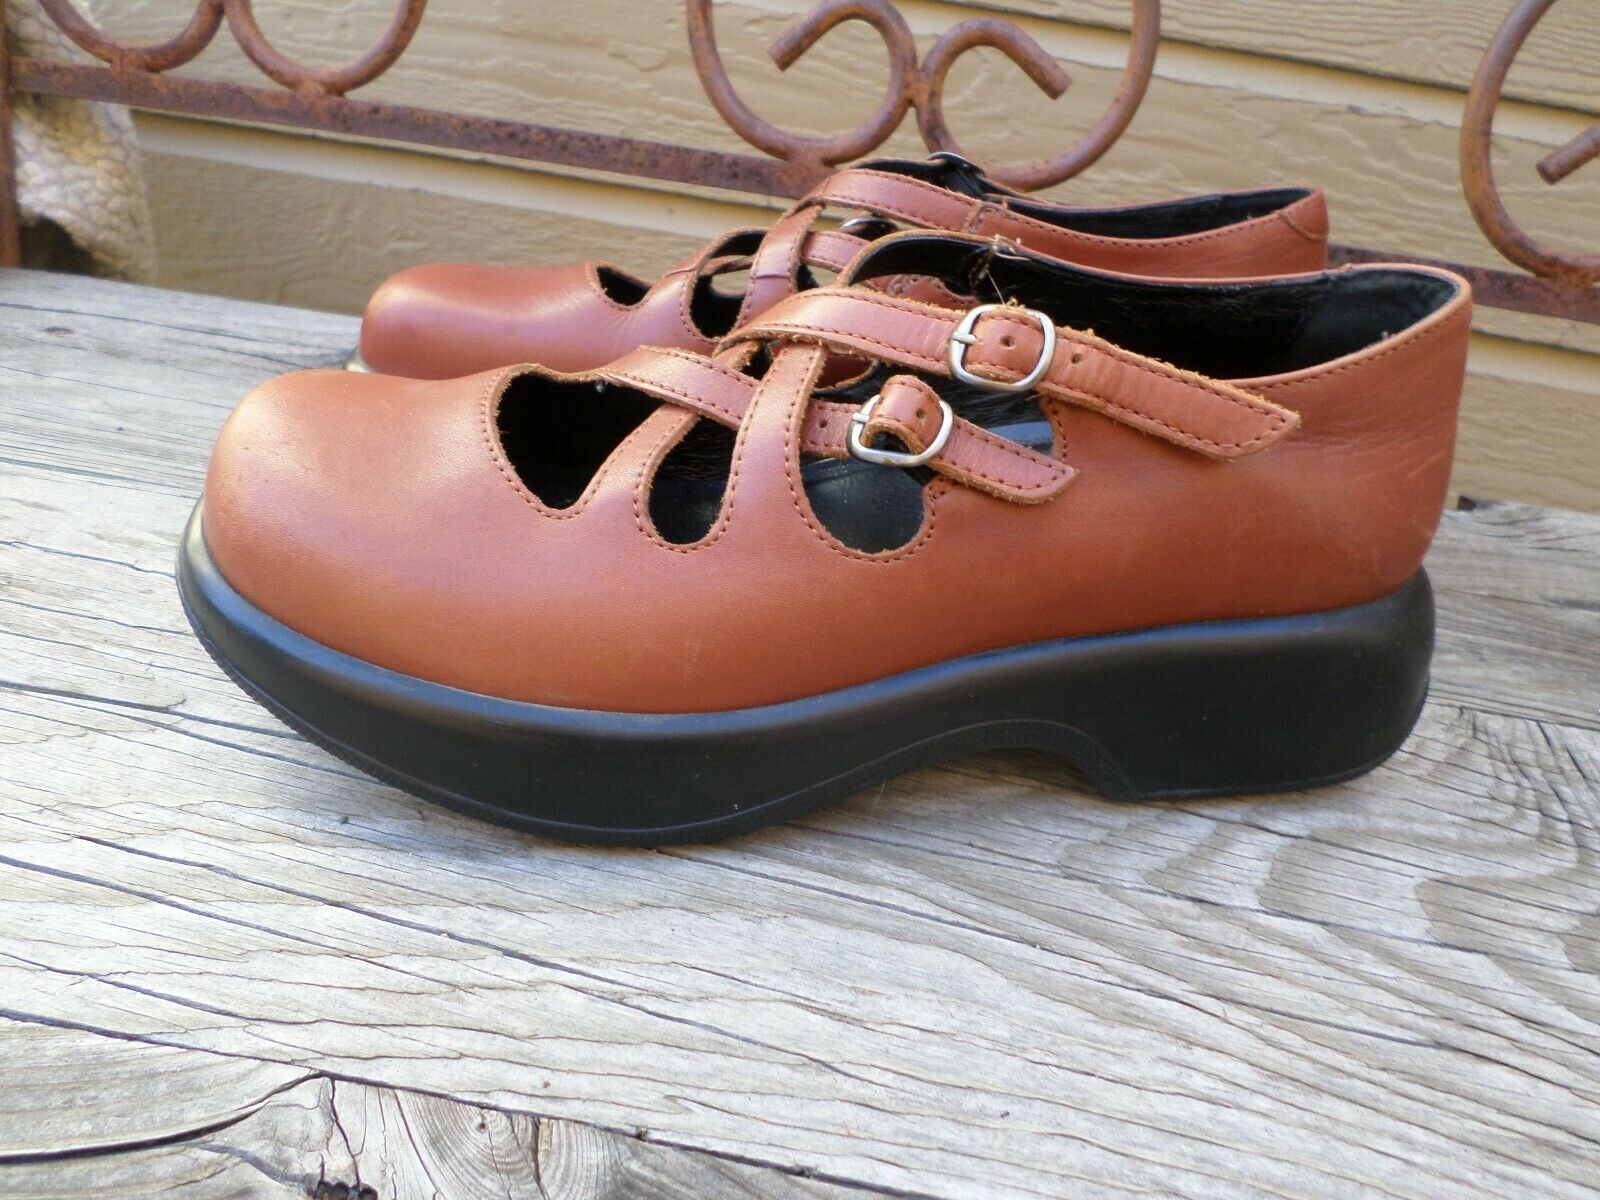 Dansko Brown Leather Chunky Mary Jane shoes Women's 39   8.5-9  Made in Mgoldcco